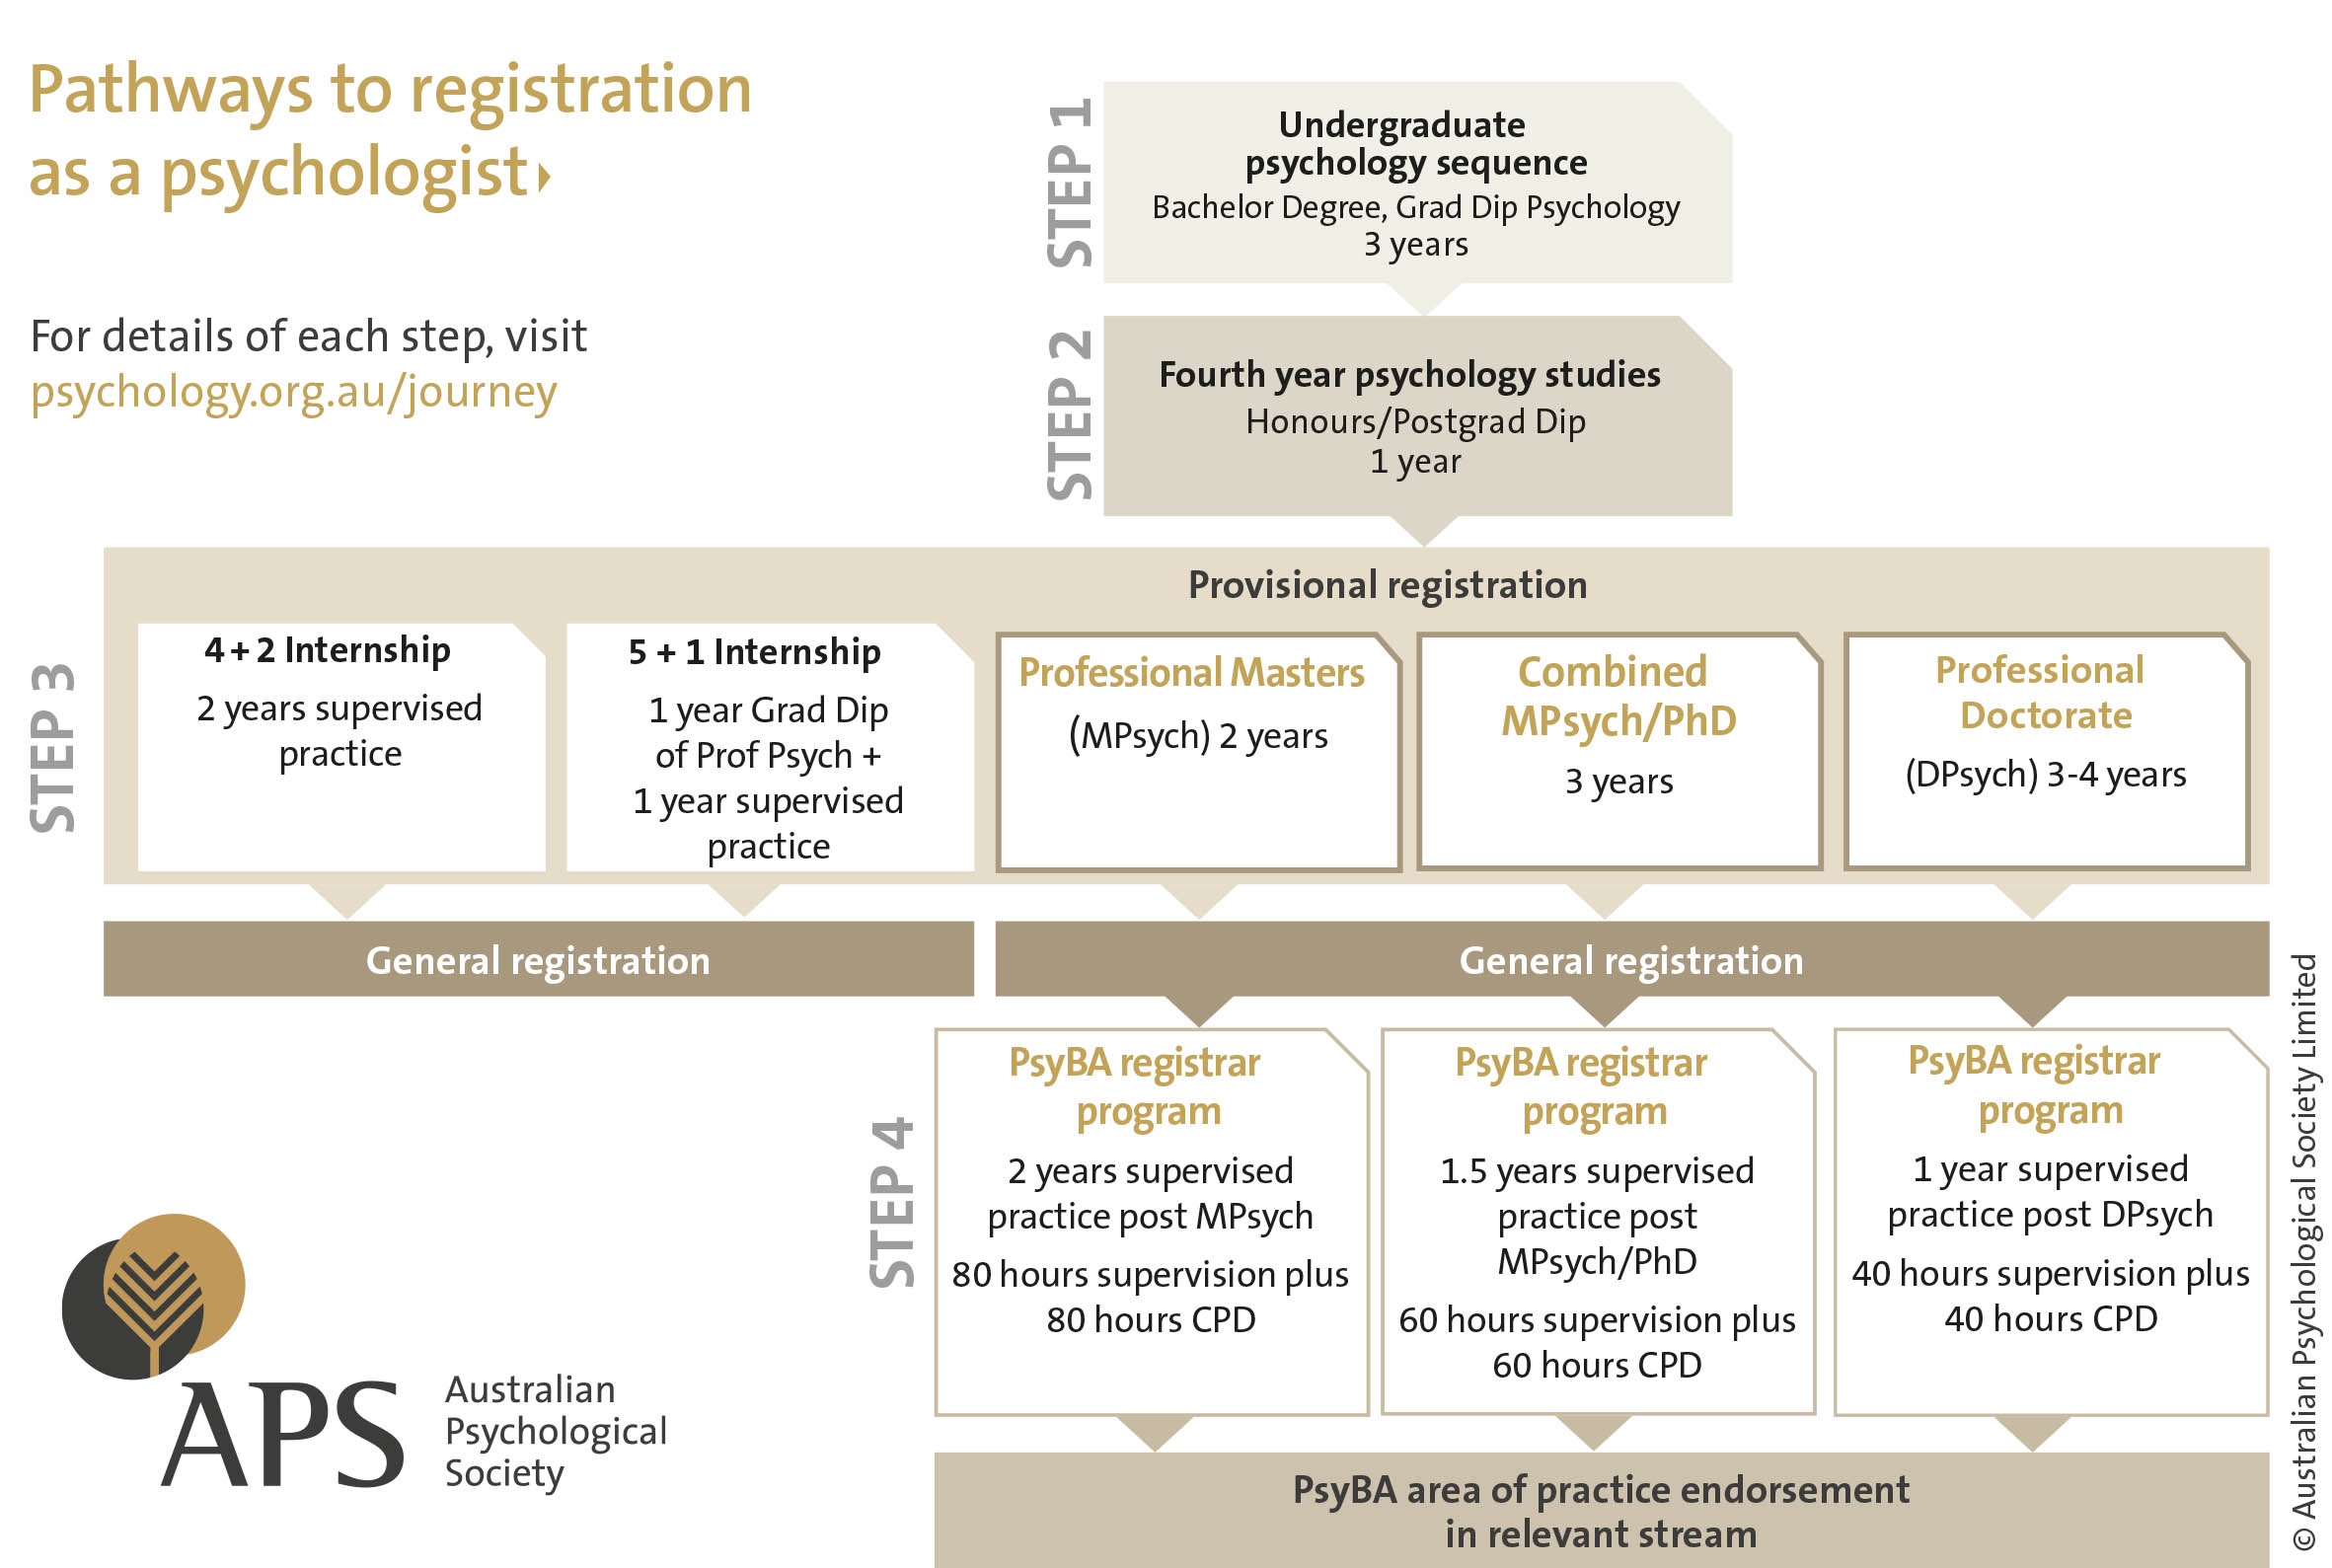 This diagram shows the steps you need to take to become a registered psychologist with the APS